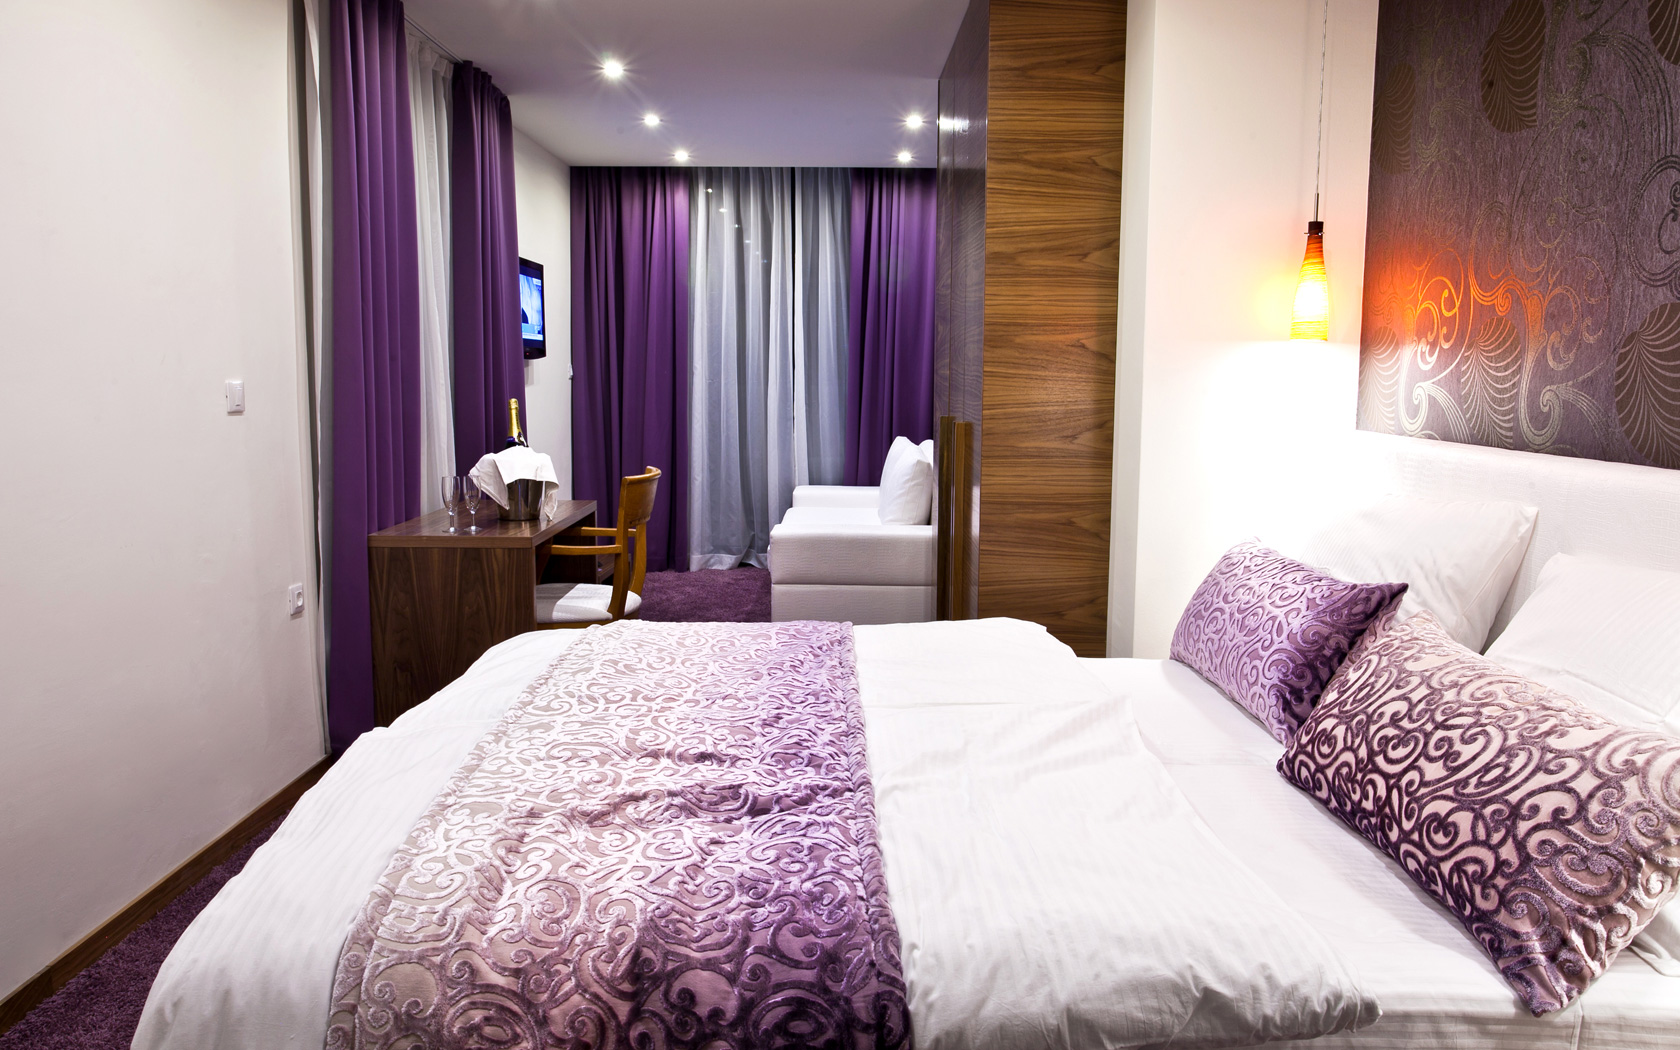 original hotelshotel gala split, purple rooms and sea views